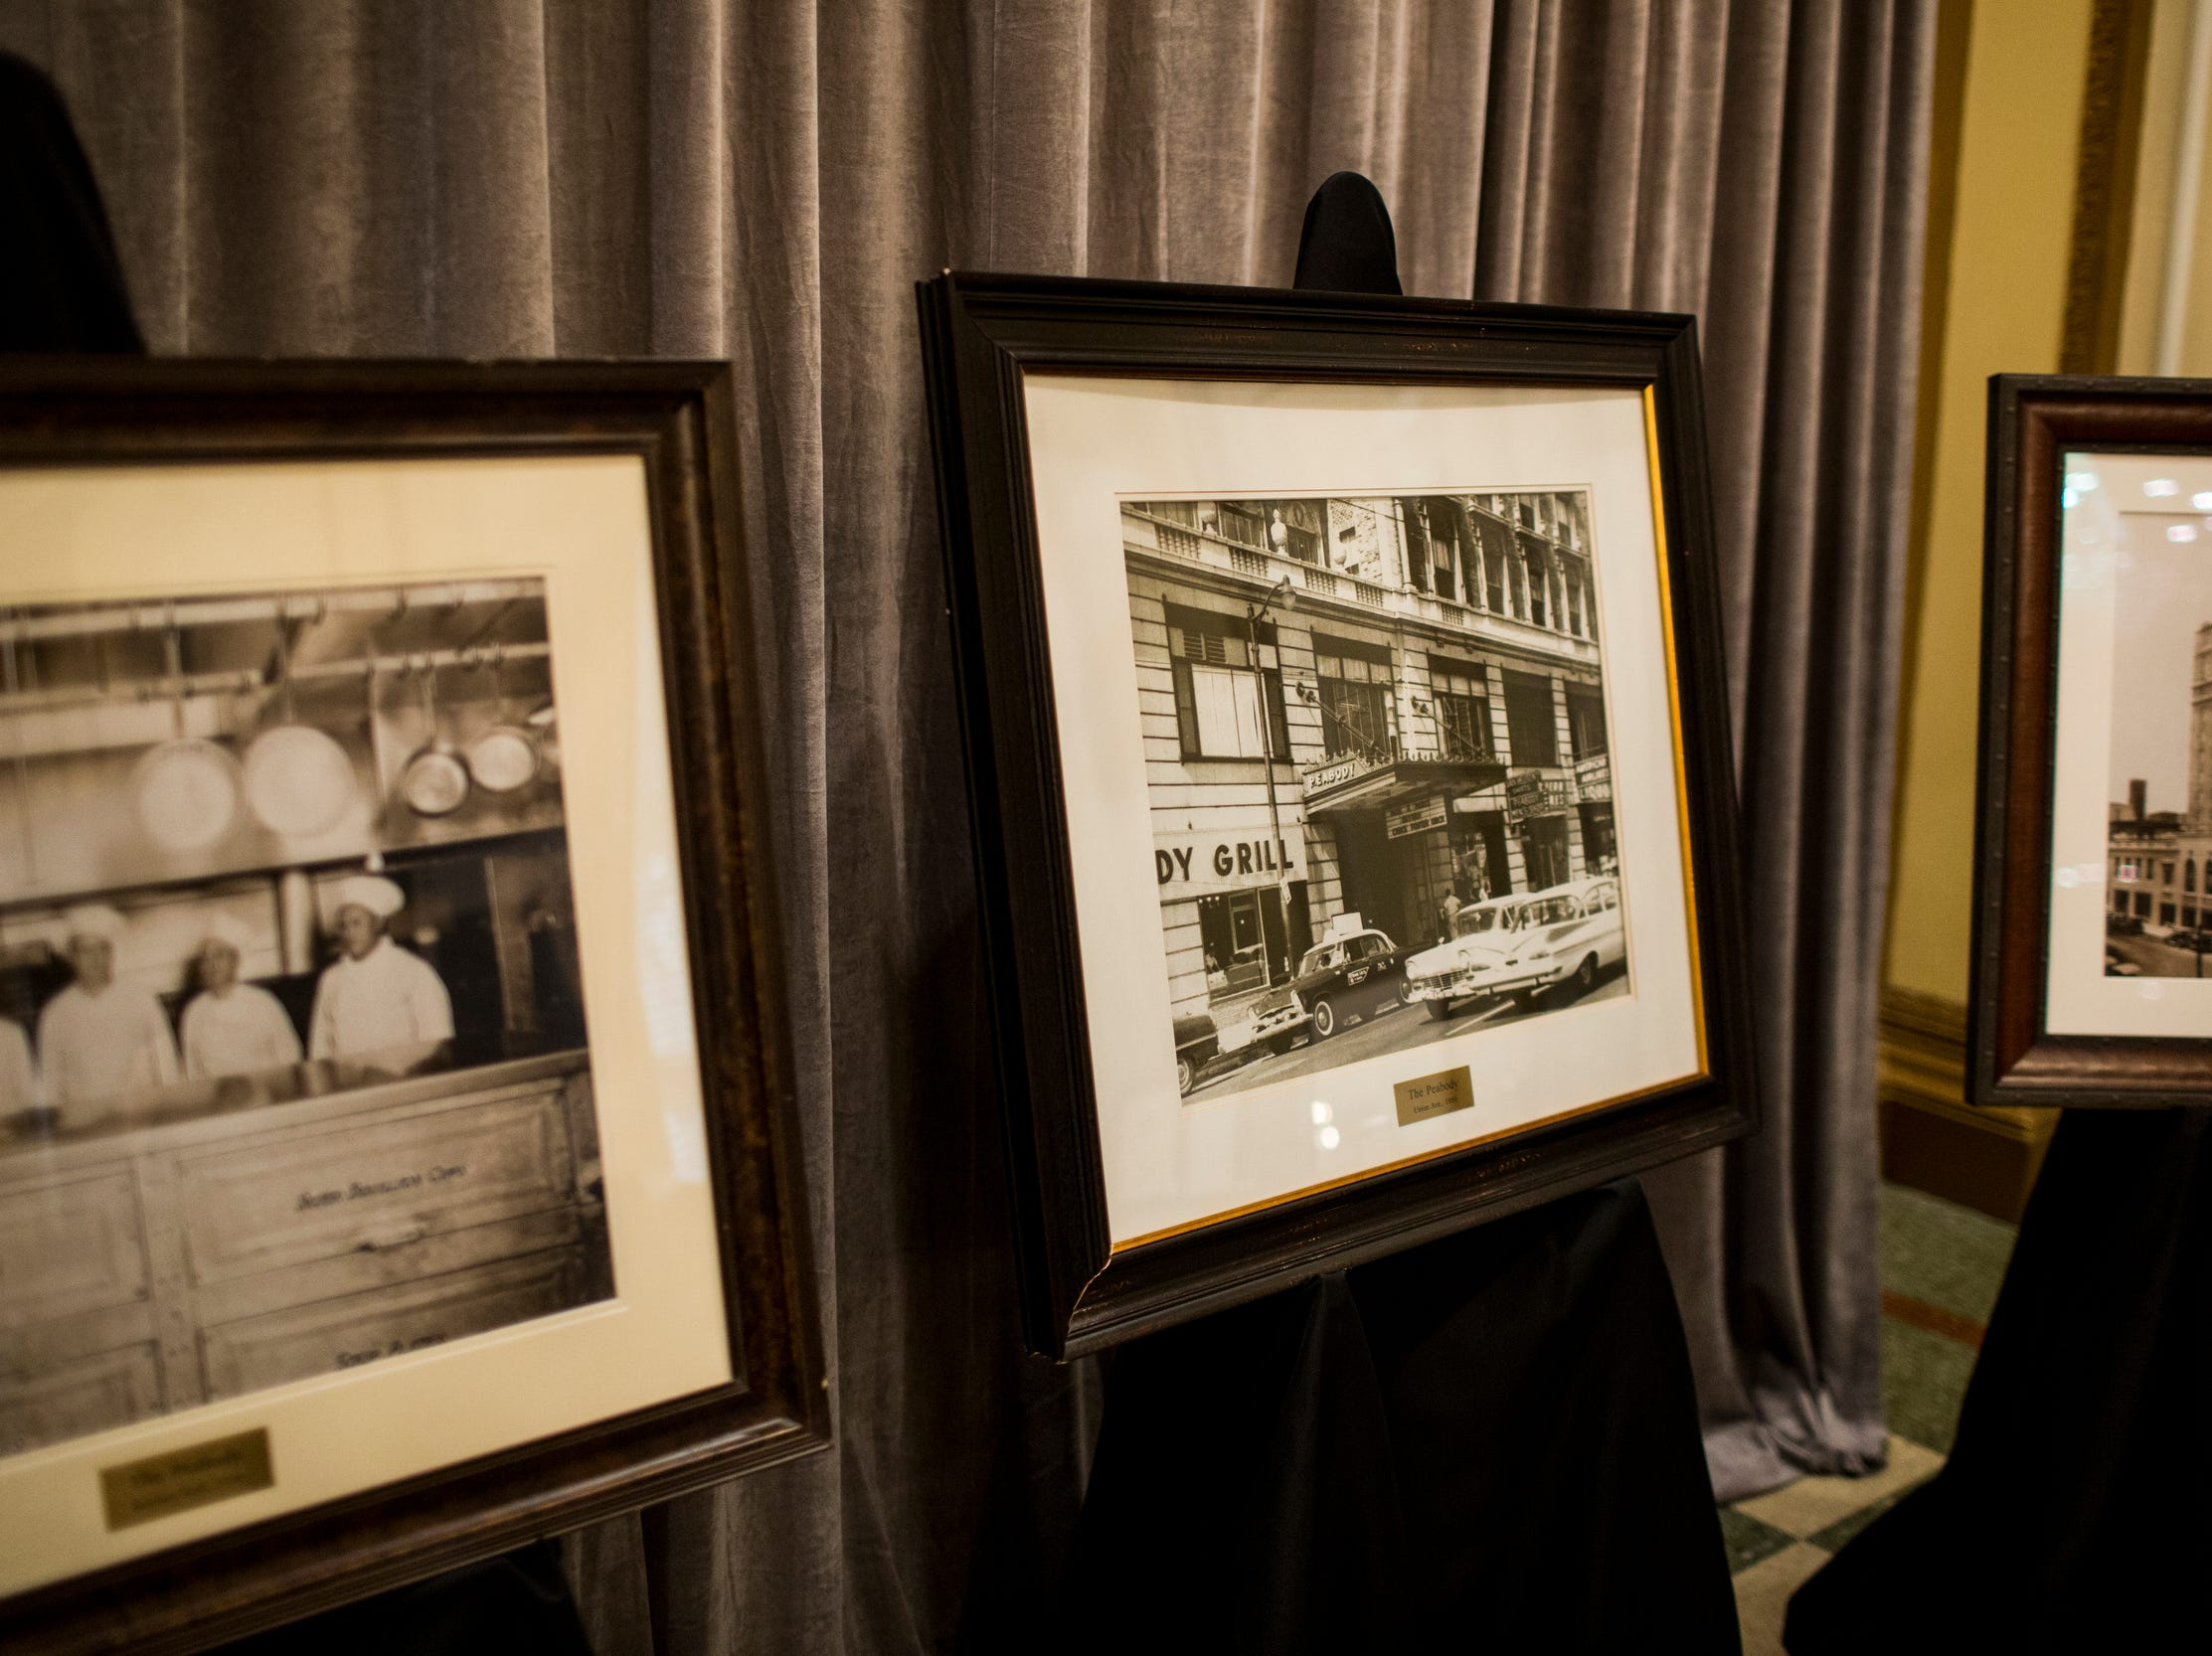 February 06, 2019 - Historic photos were on display during The Peabody 150th anniversary media launch party. The Peabody Memphis will celebrate its 150th anniversary in 2019 with a series of special offers and events.